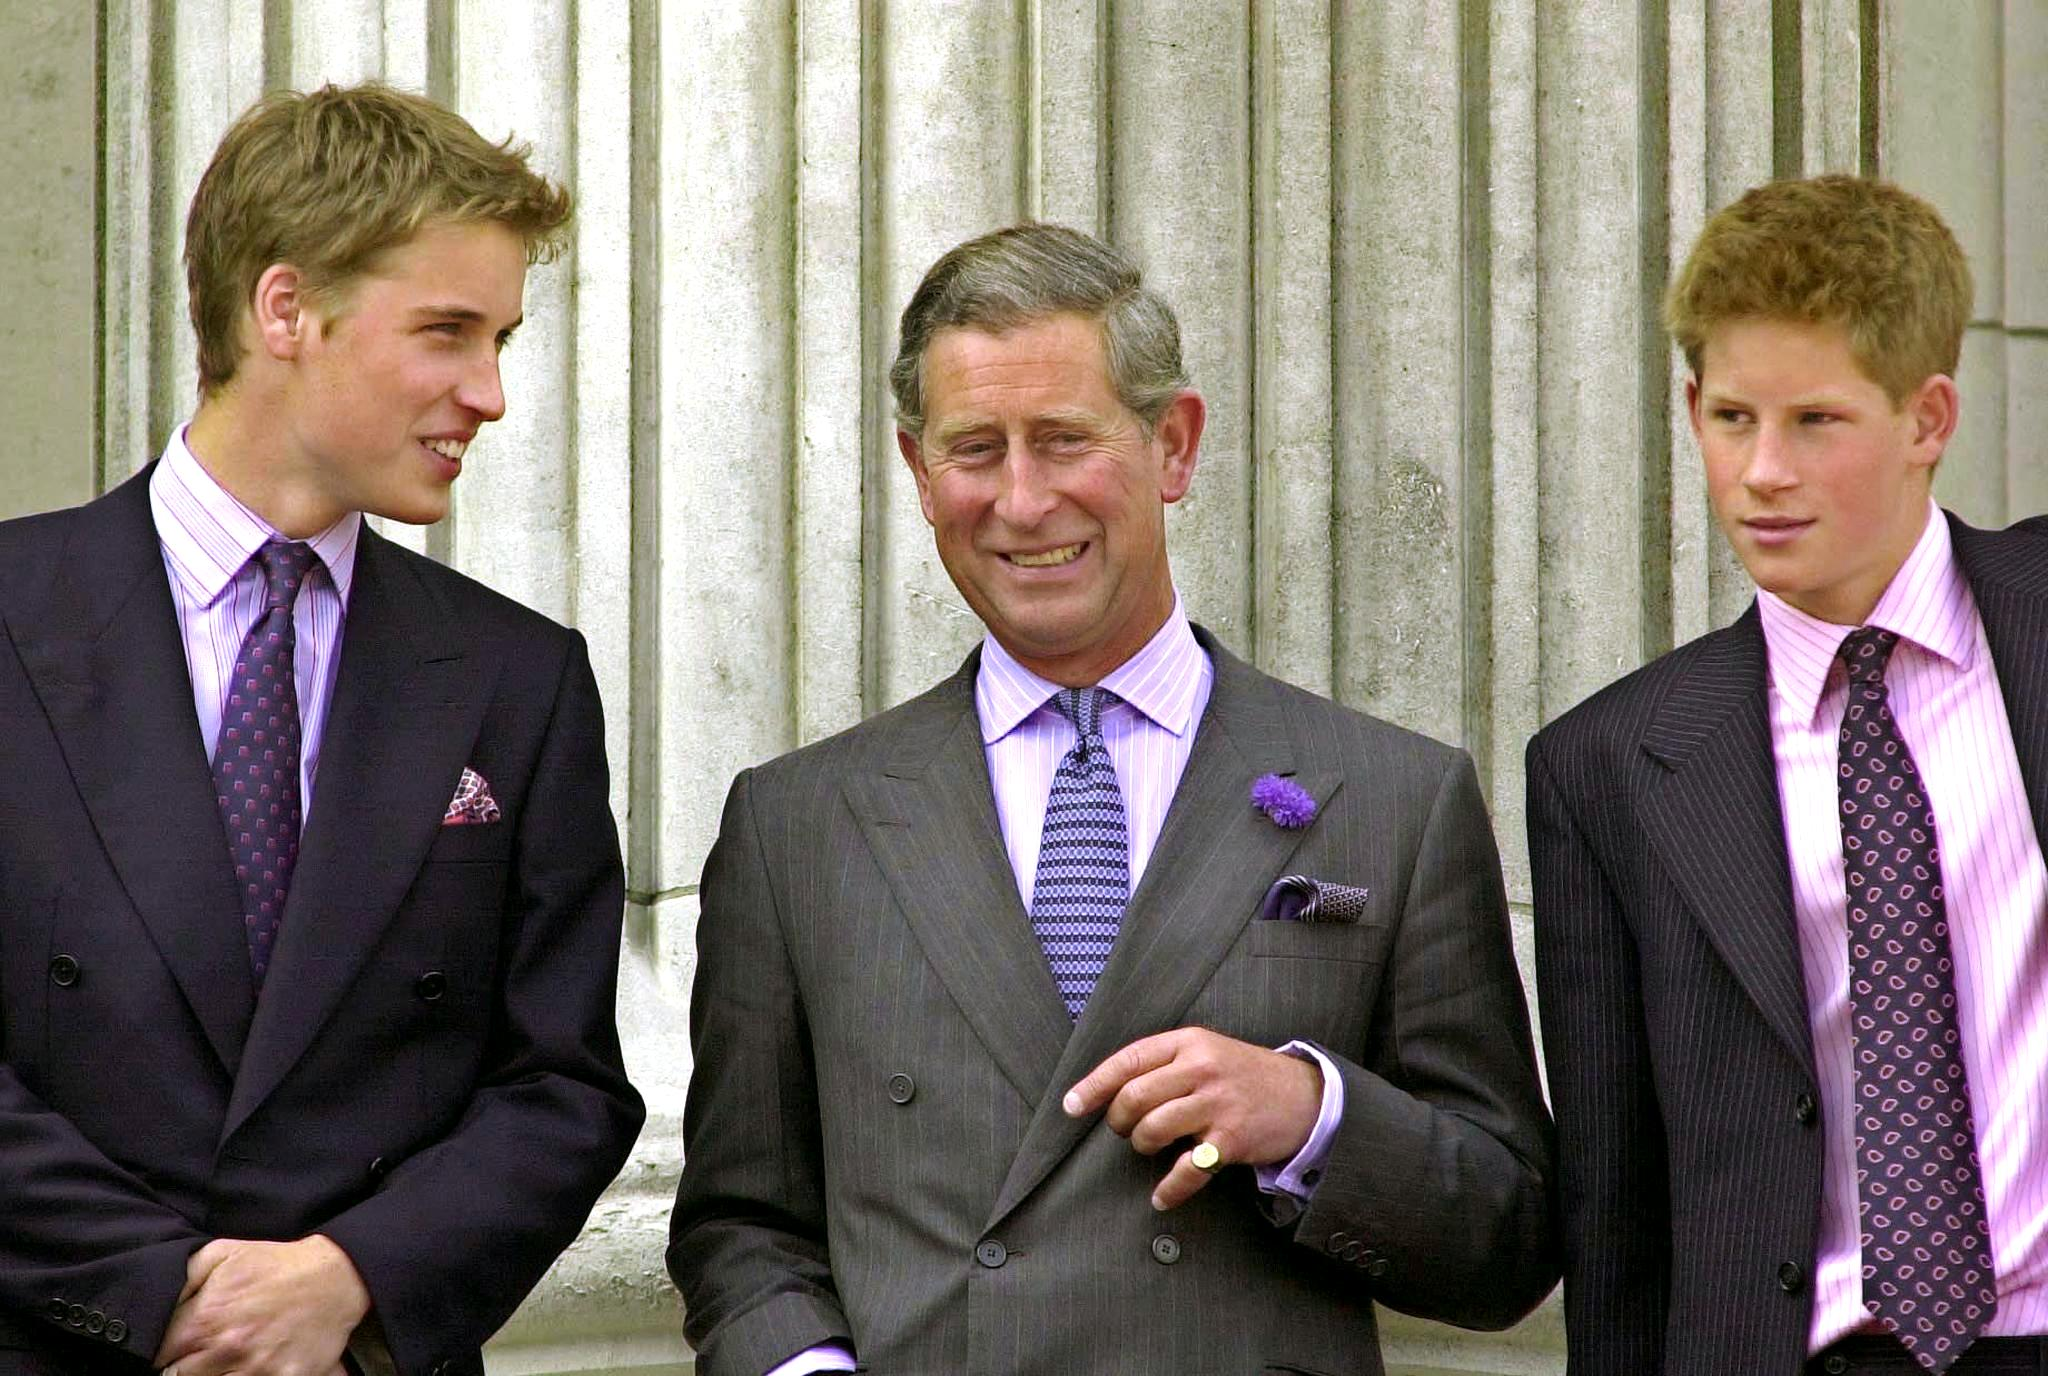 royal family secrets reveal what prince harry and prince william s relationship with their dad is really like royal family secrets reveal what prince